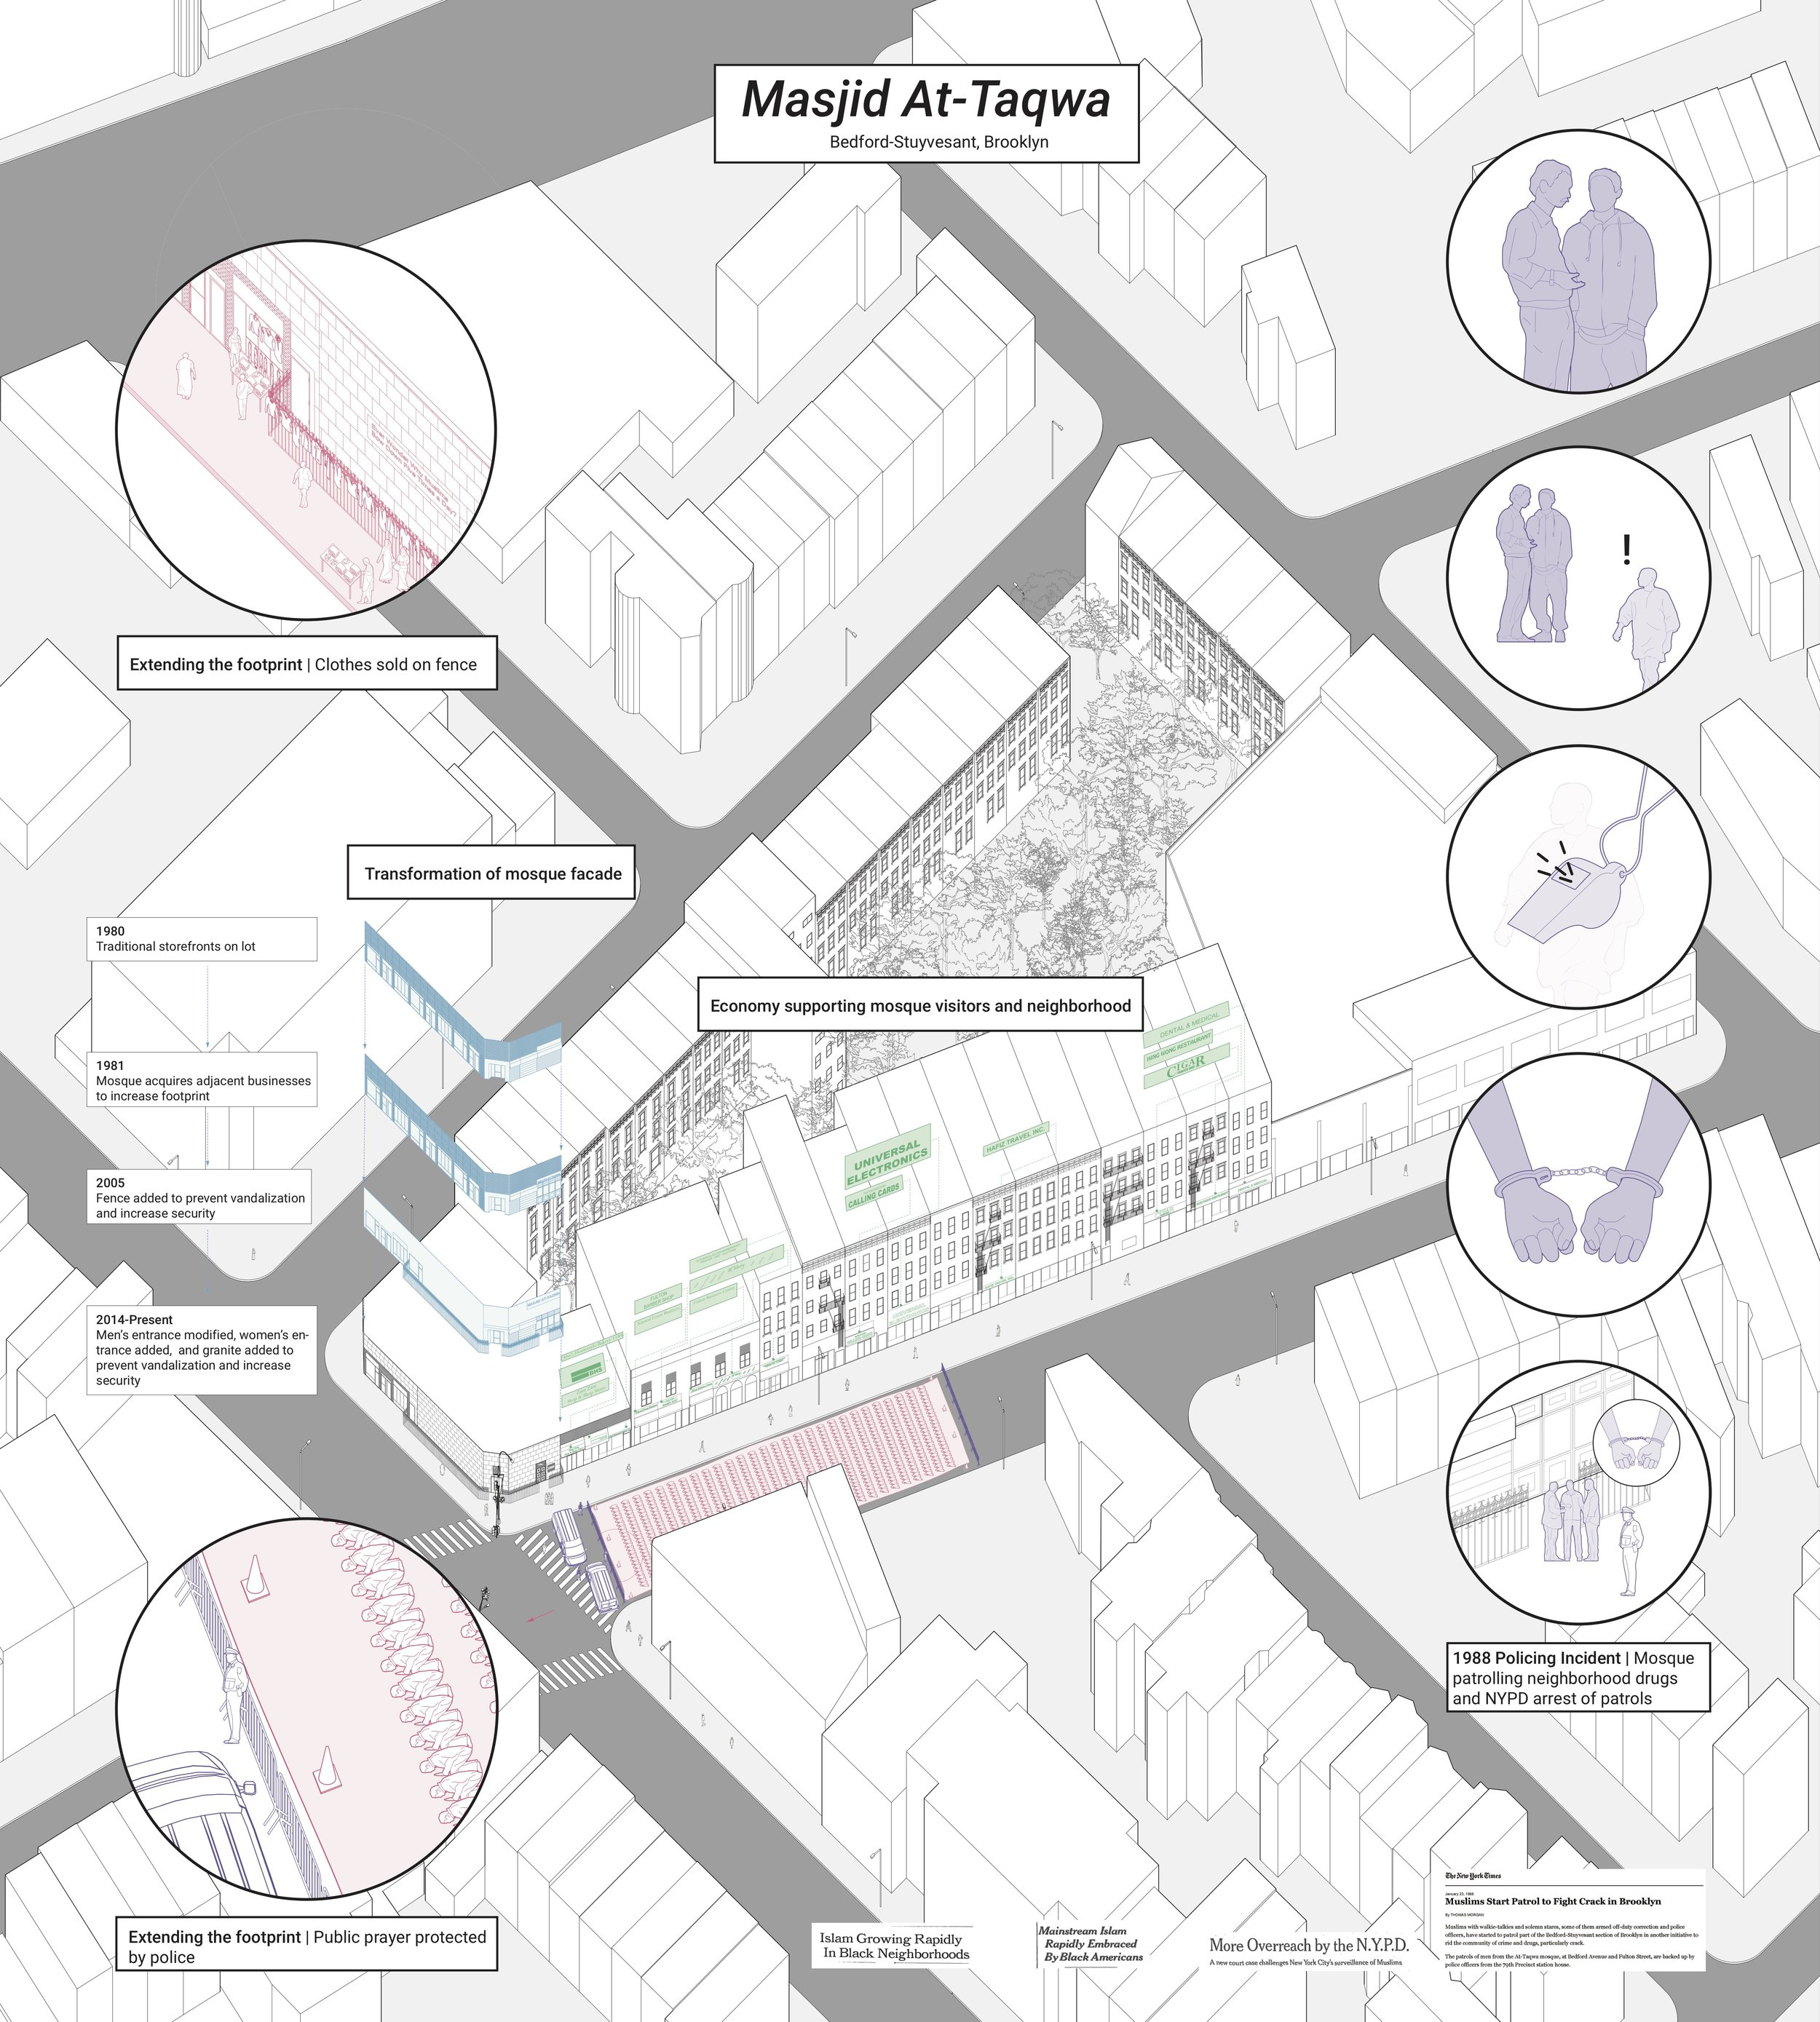 Analytical drawing describing the transformation of the mosque facade over time, extension of the footprint during certain events, economy supporting the mosque visitors and neighborhood, and the 1988 policing incident